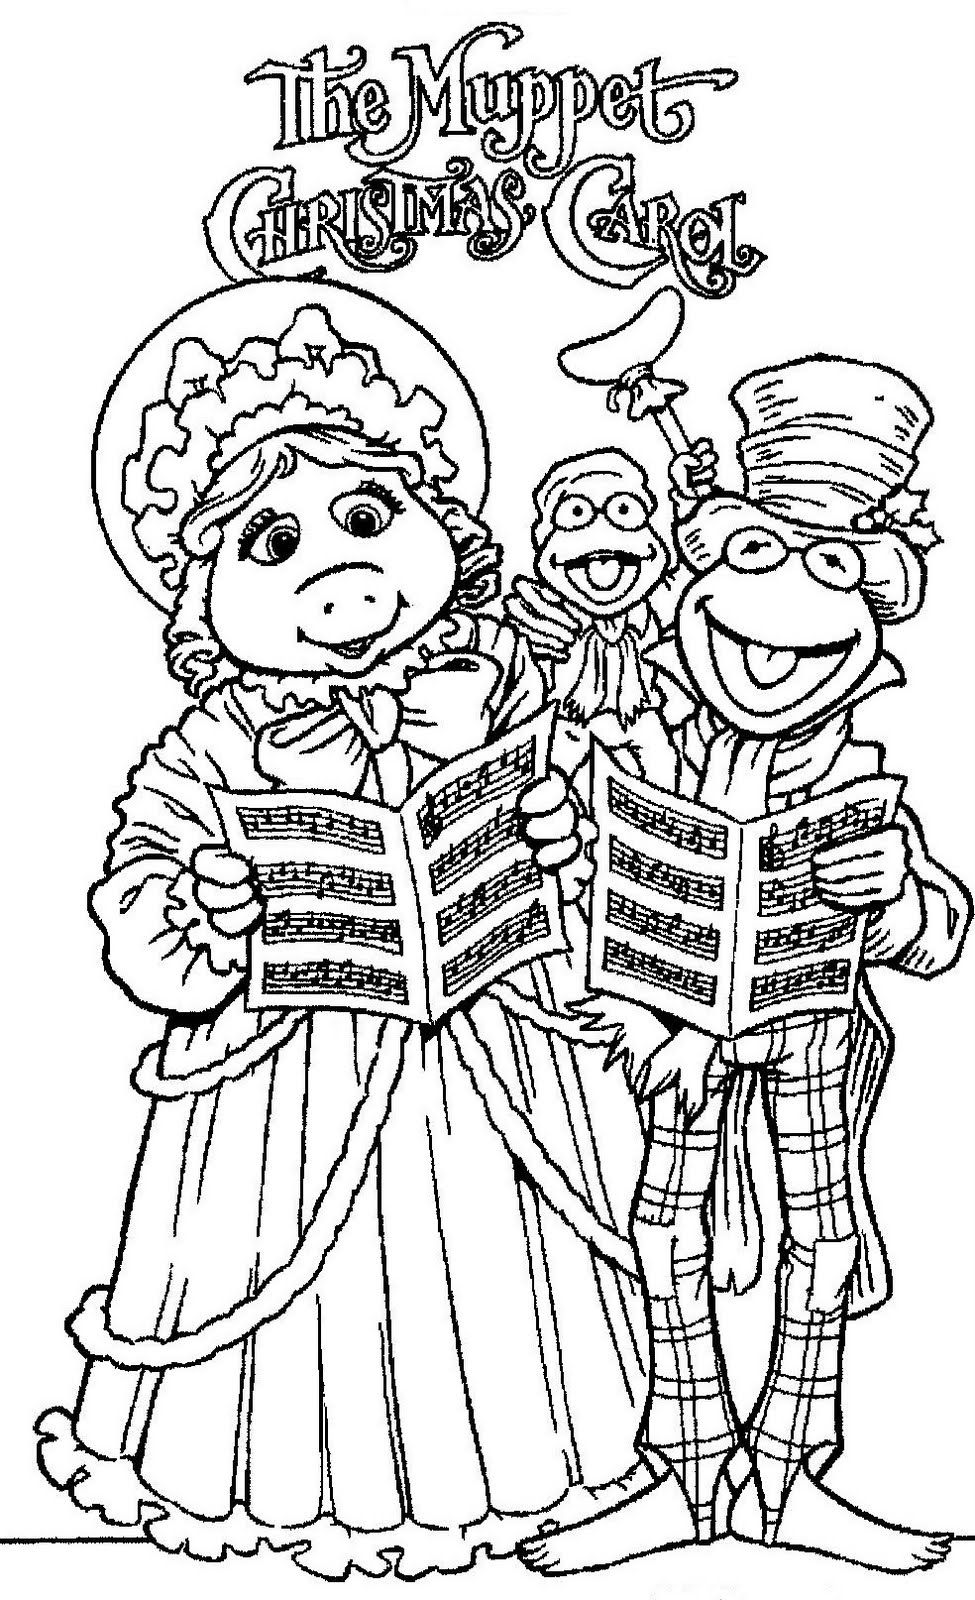 The Muppets Drawings Coloring Child Coloring And Children Wallpapers Clipart Best Cli Christmas Coloring Pages Baby Coloring Pages Christmas Music Coloring